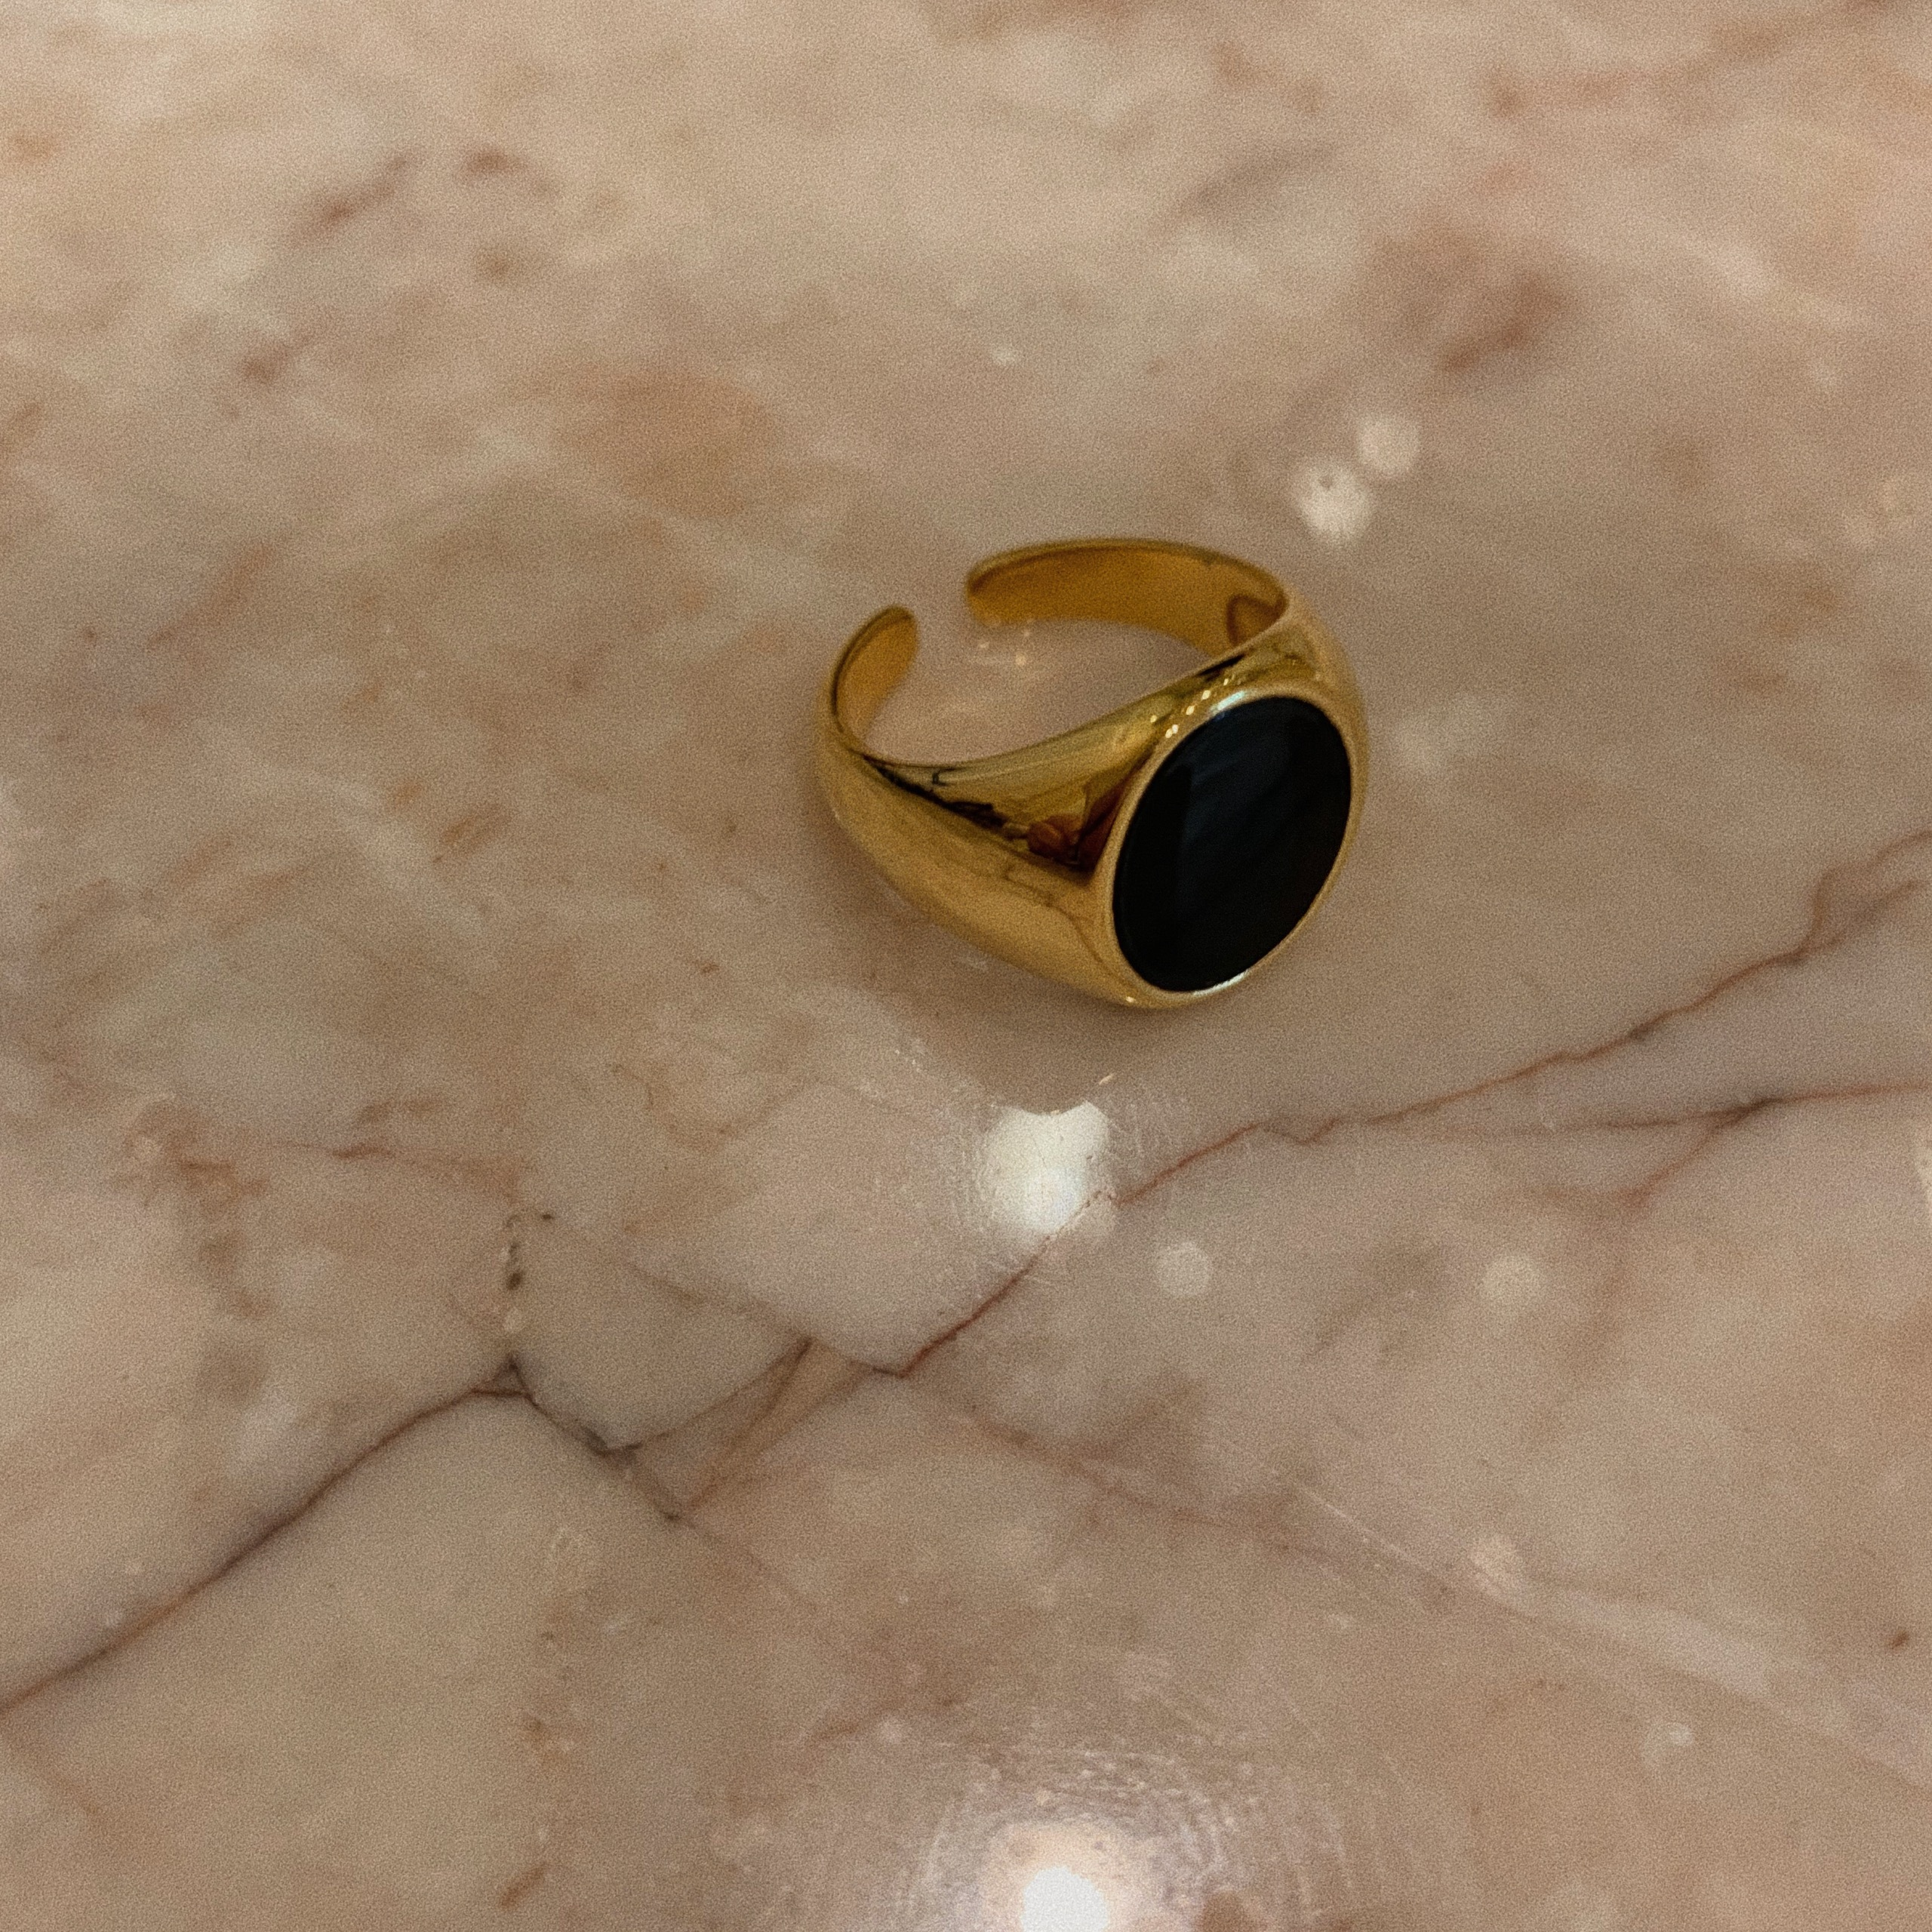 gold ring(stone)